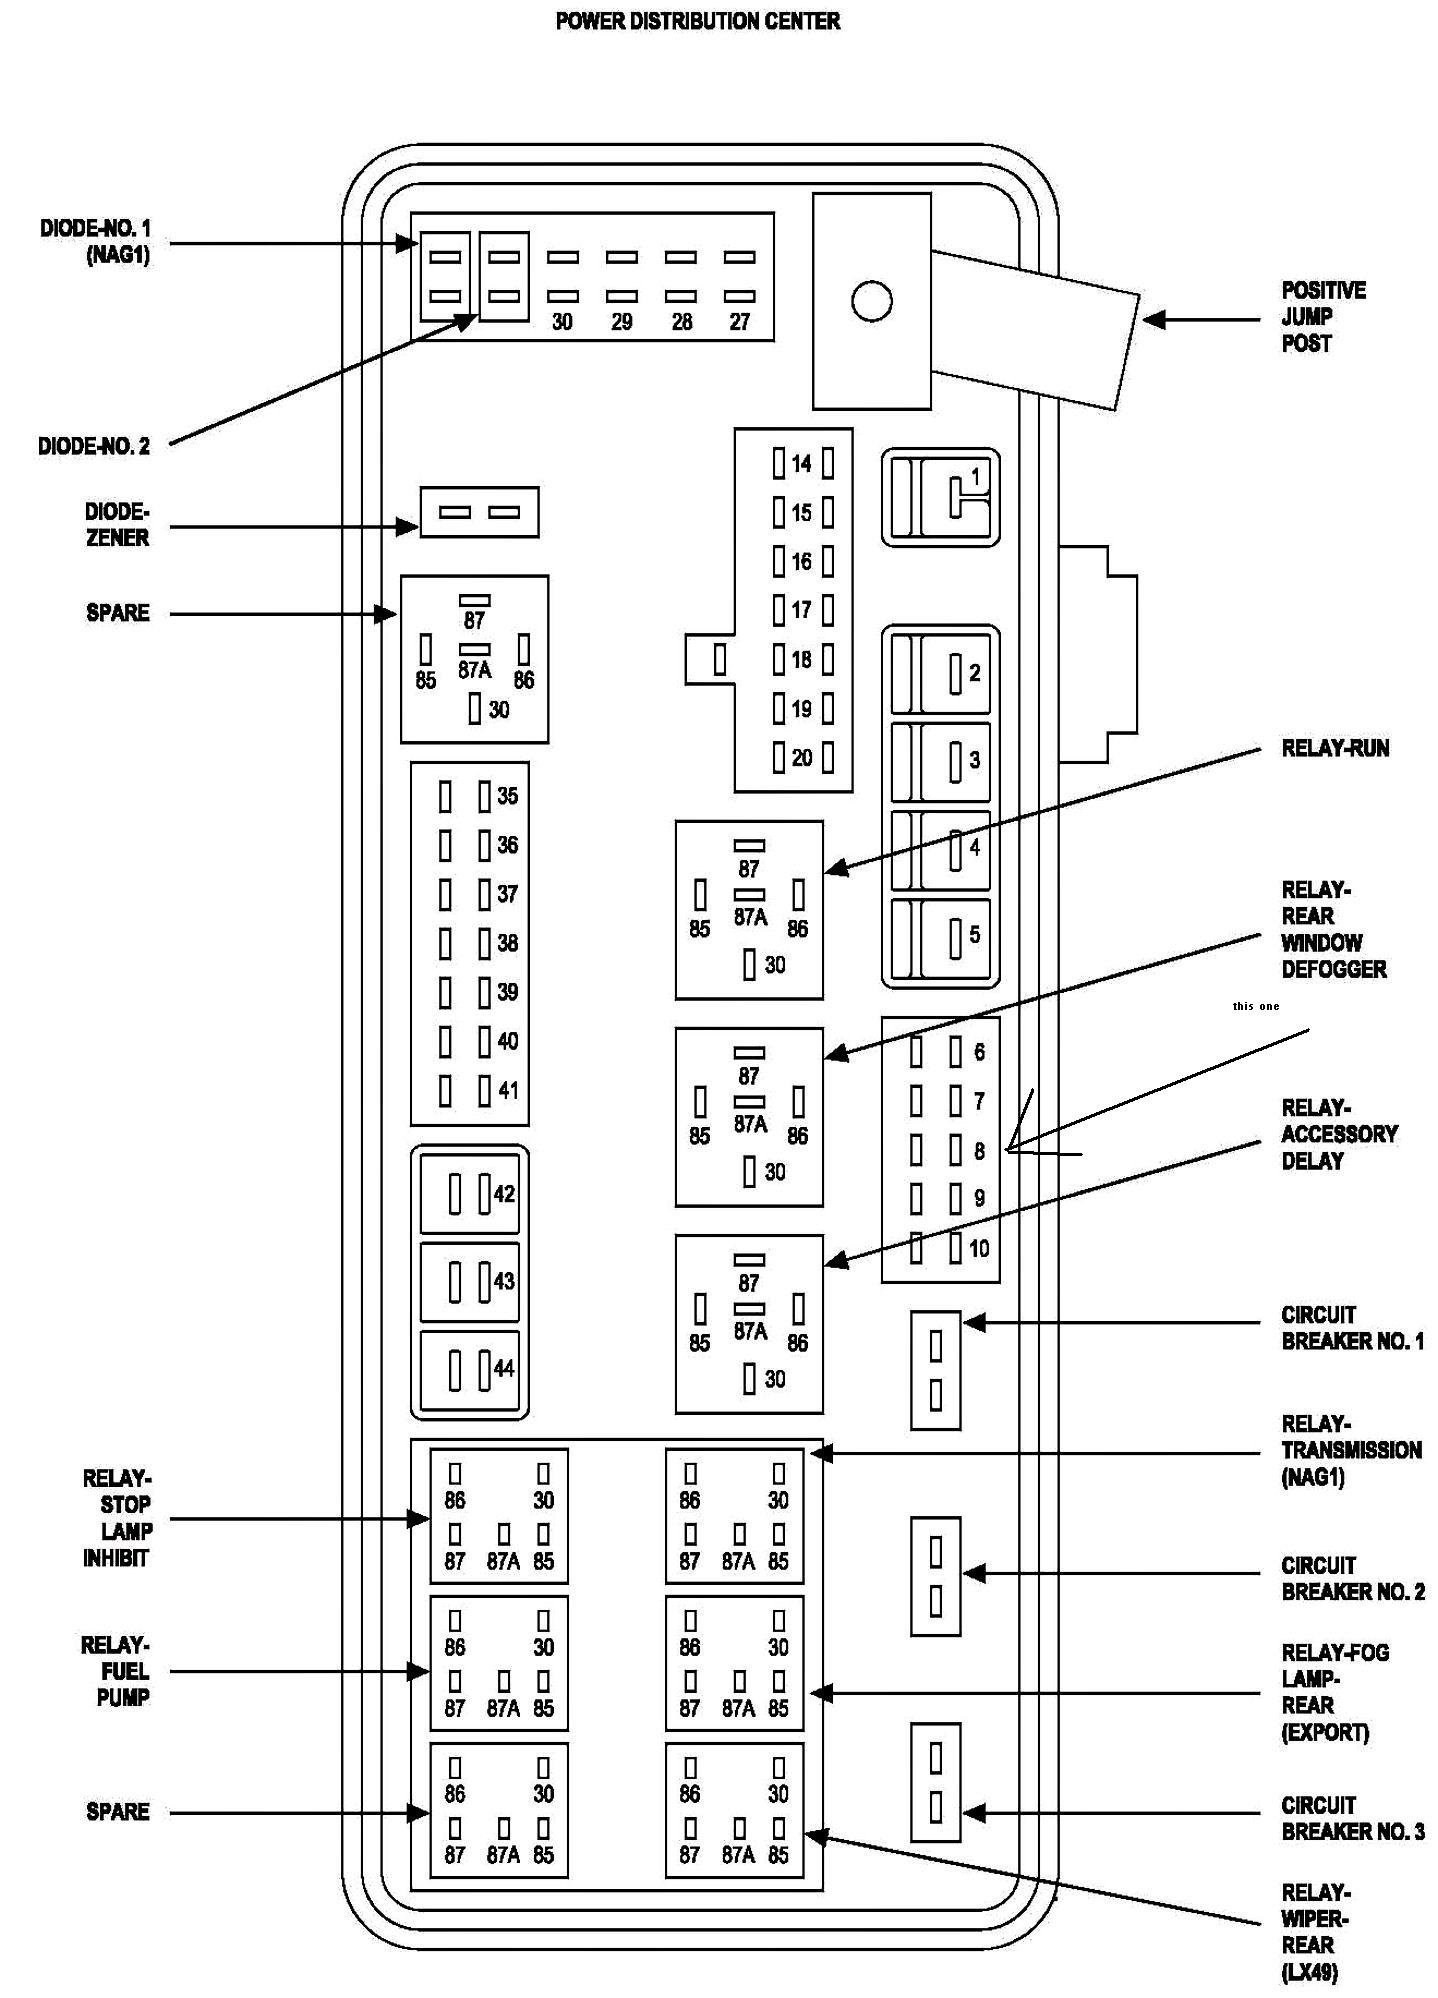 [SCHEMATICS_4PO]  08 Dakota Fuse Box S | Wiring Diagram | 2008 Dodge Dakota Fuse Box Diagram |  | Wiring Diagram - AutoScout24